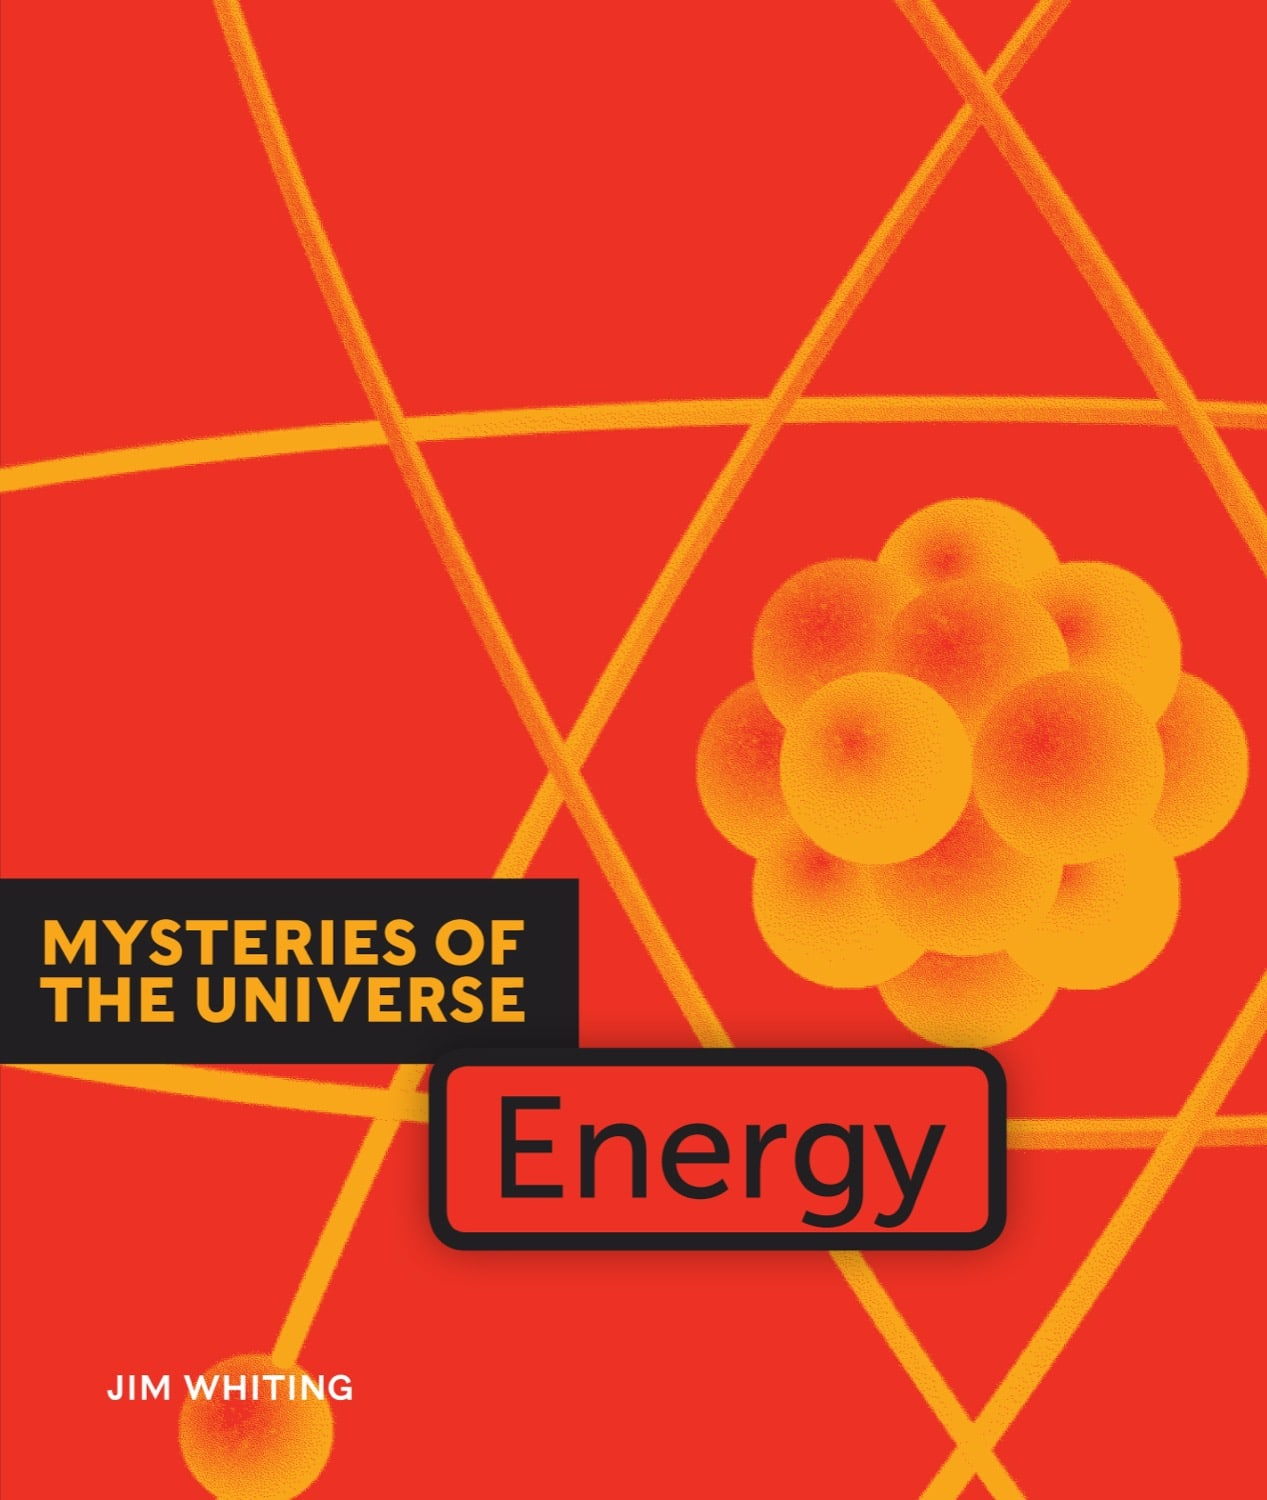 Mysteries of the Universe: Energy